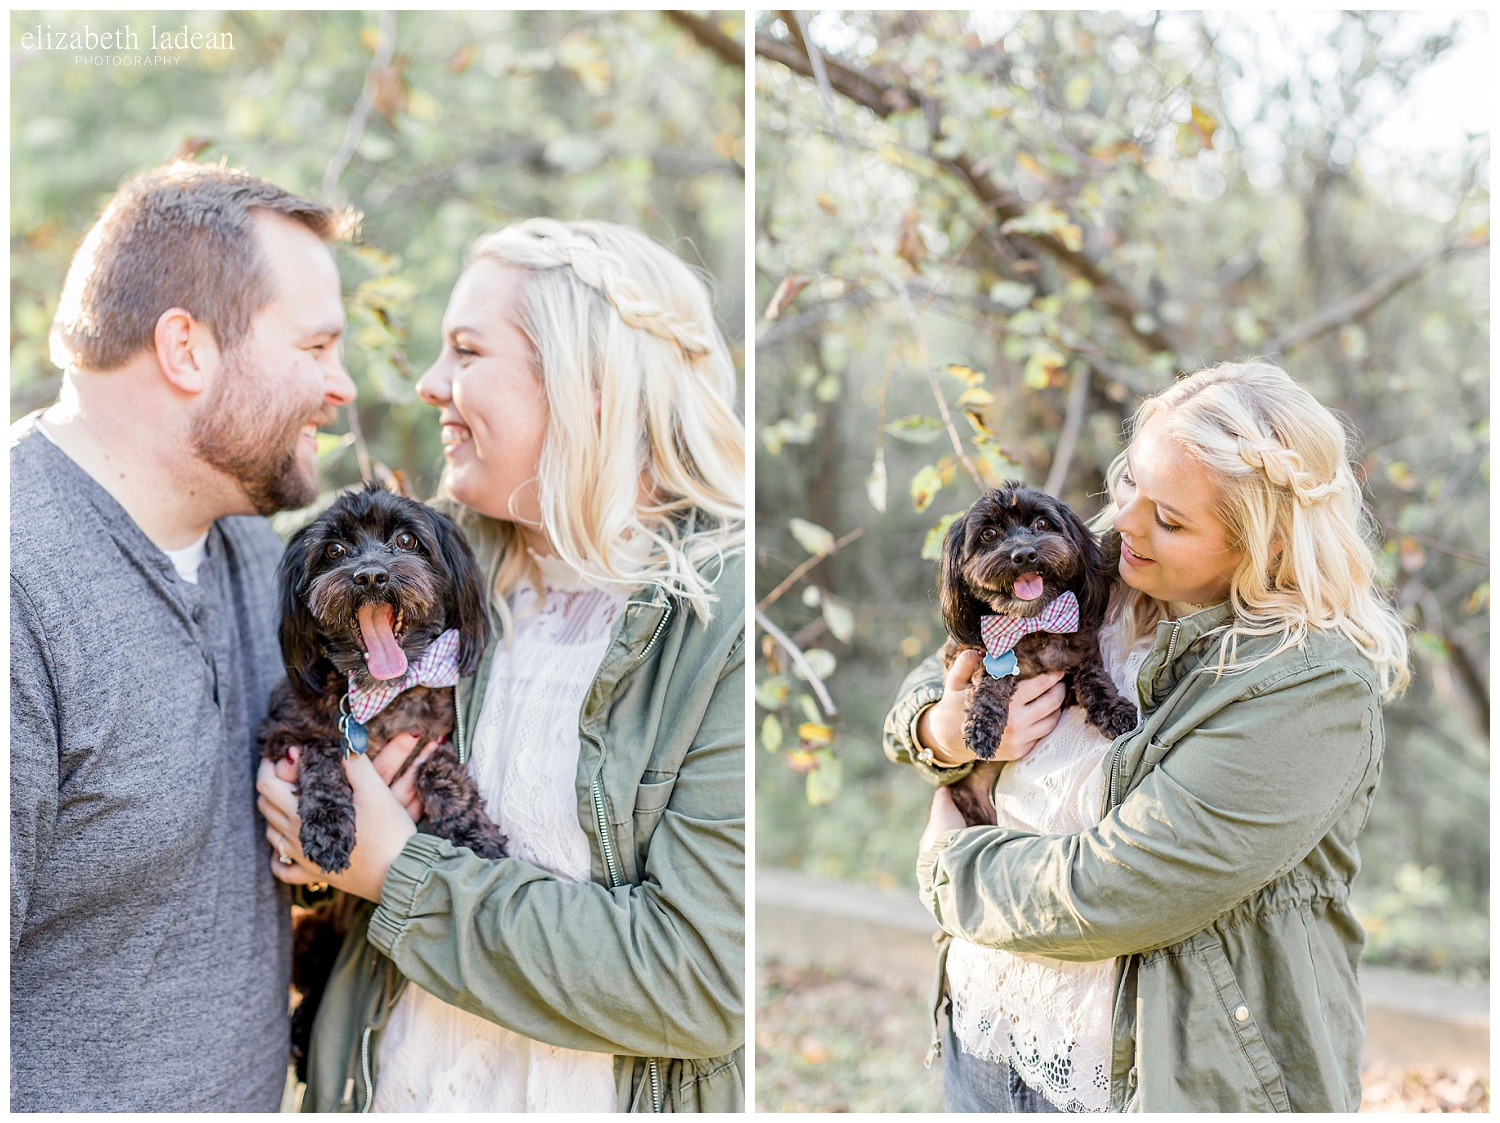 KC-Engagement-Photos-with-pets-2018-elizabeth-ladean-photography-photo-_6576.jpg